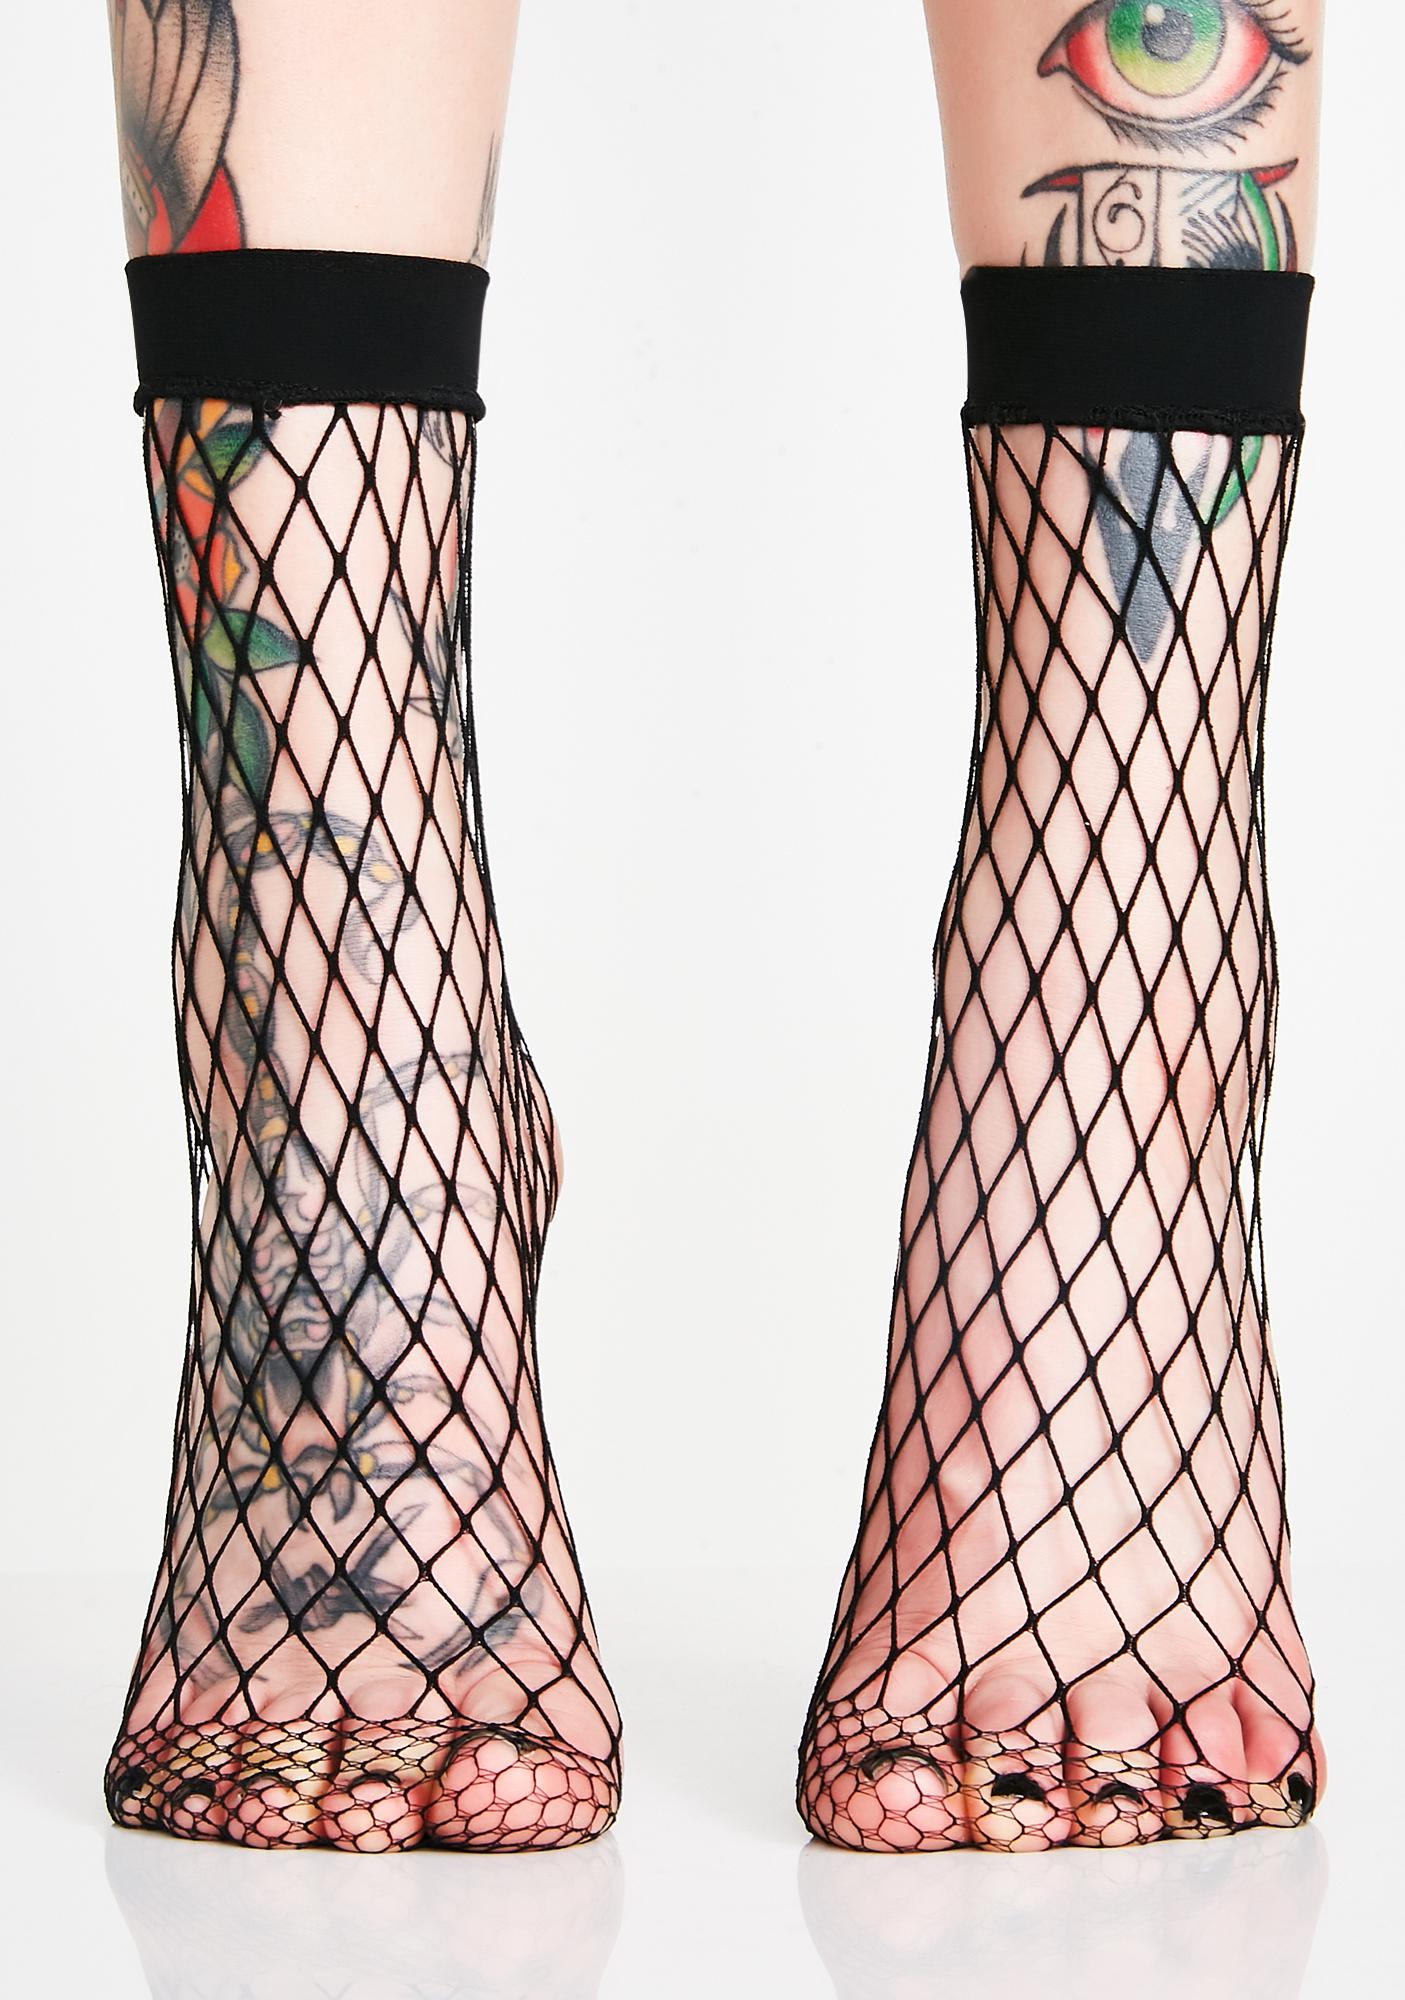 Hooked On Ya Fishnet Socks